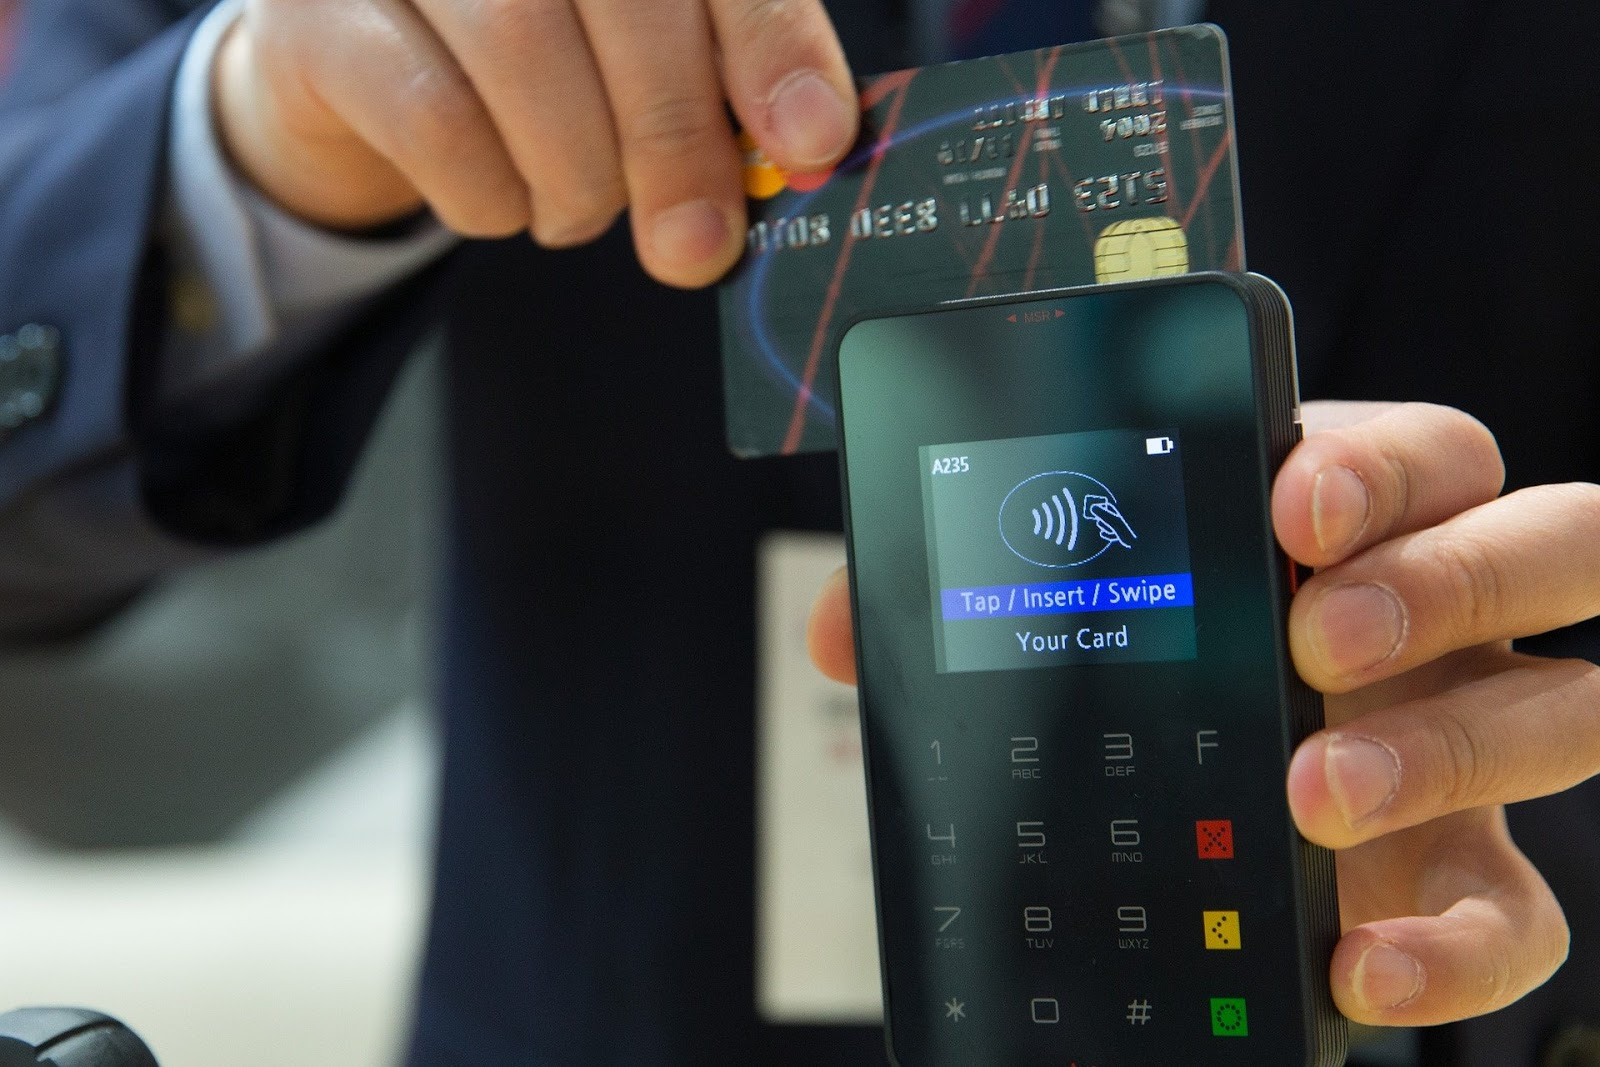 man-scanning-bank-card-through-card-reader